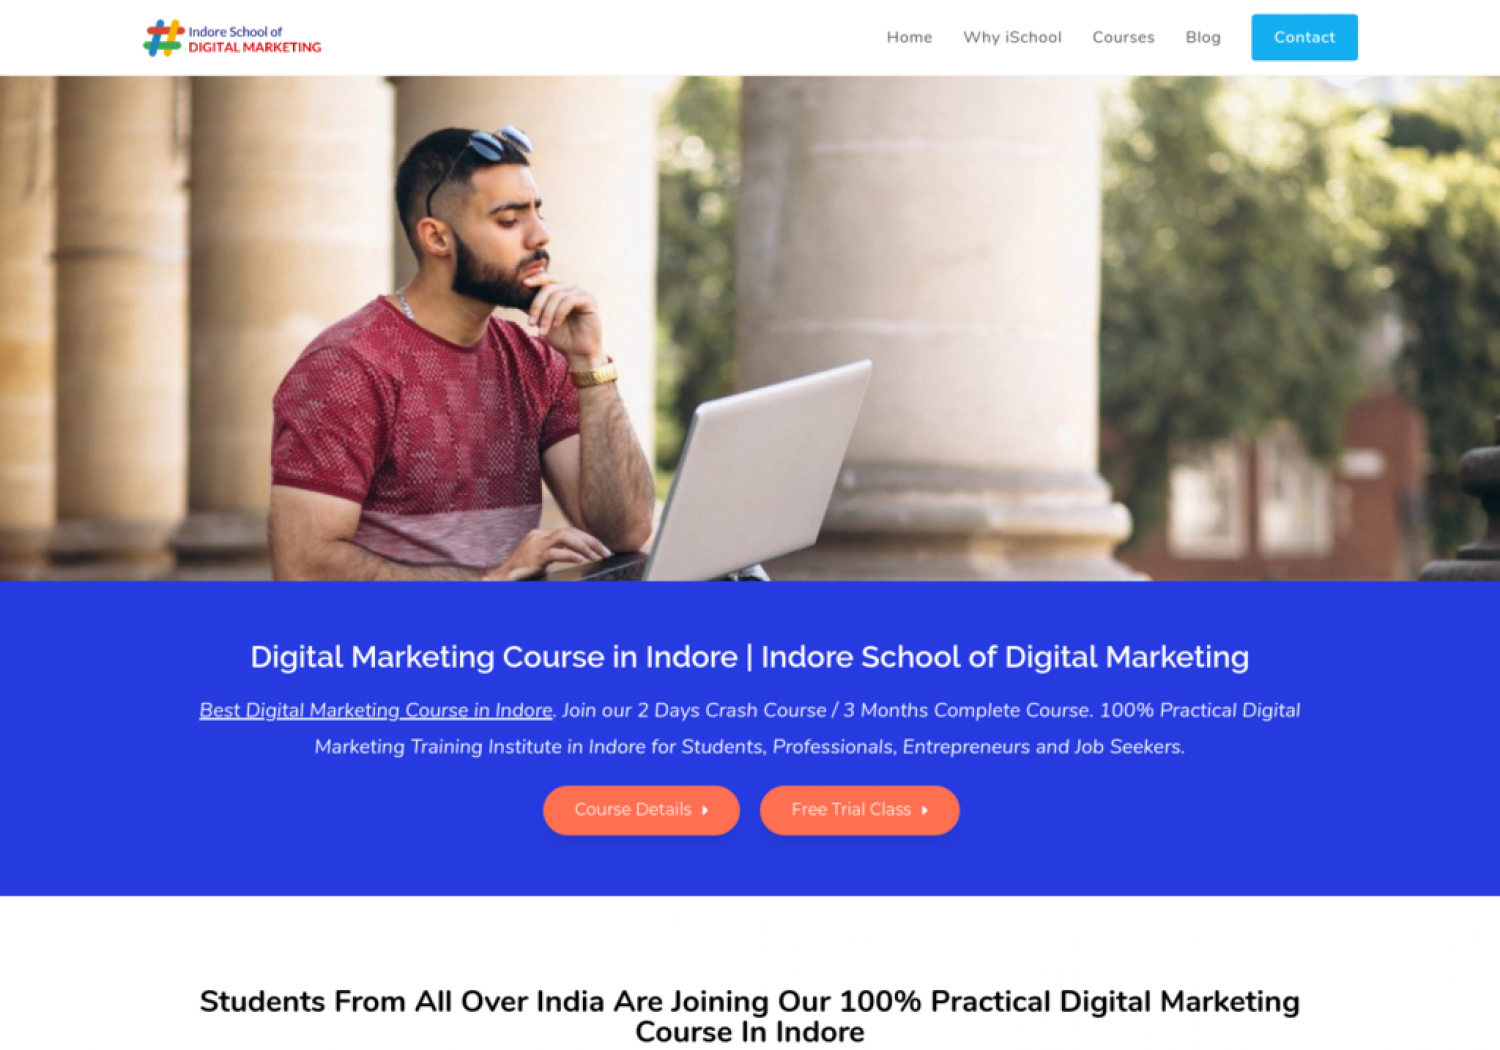 Master Digital Marketing Courses In Indore Infographic